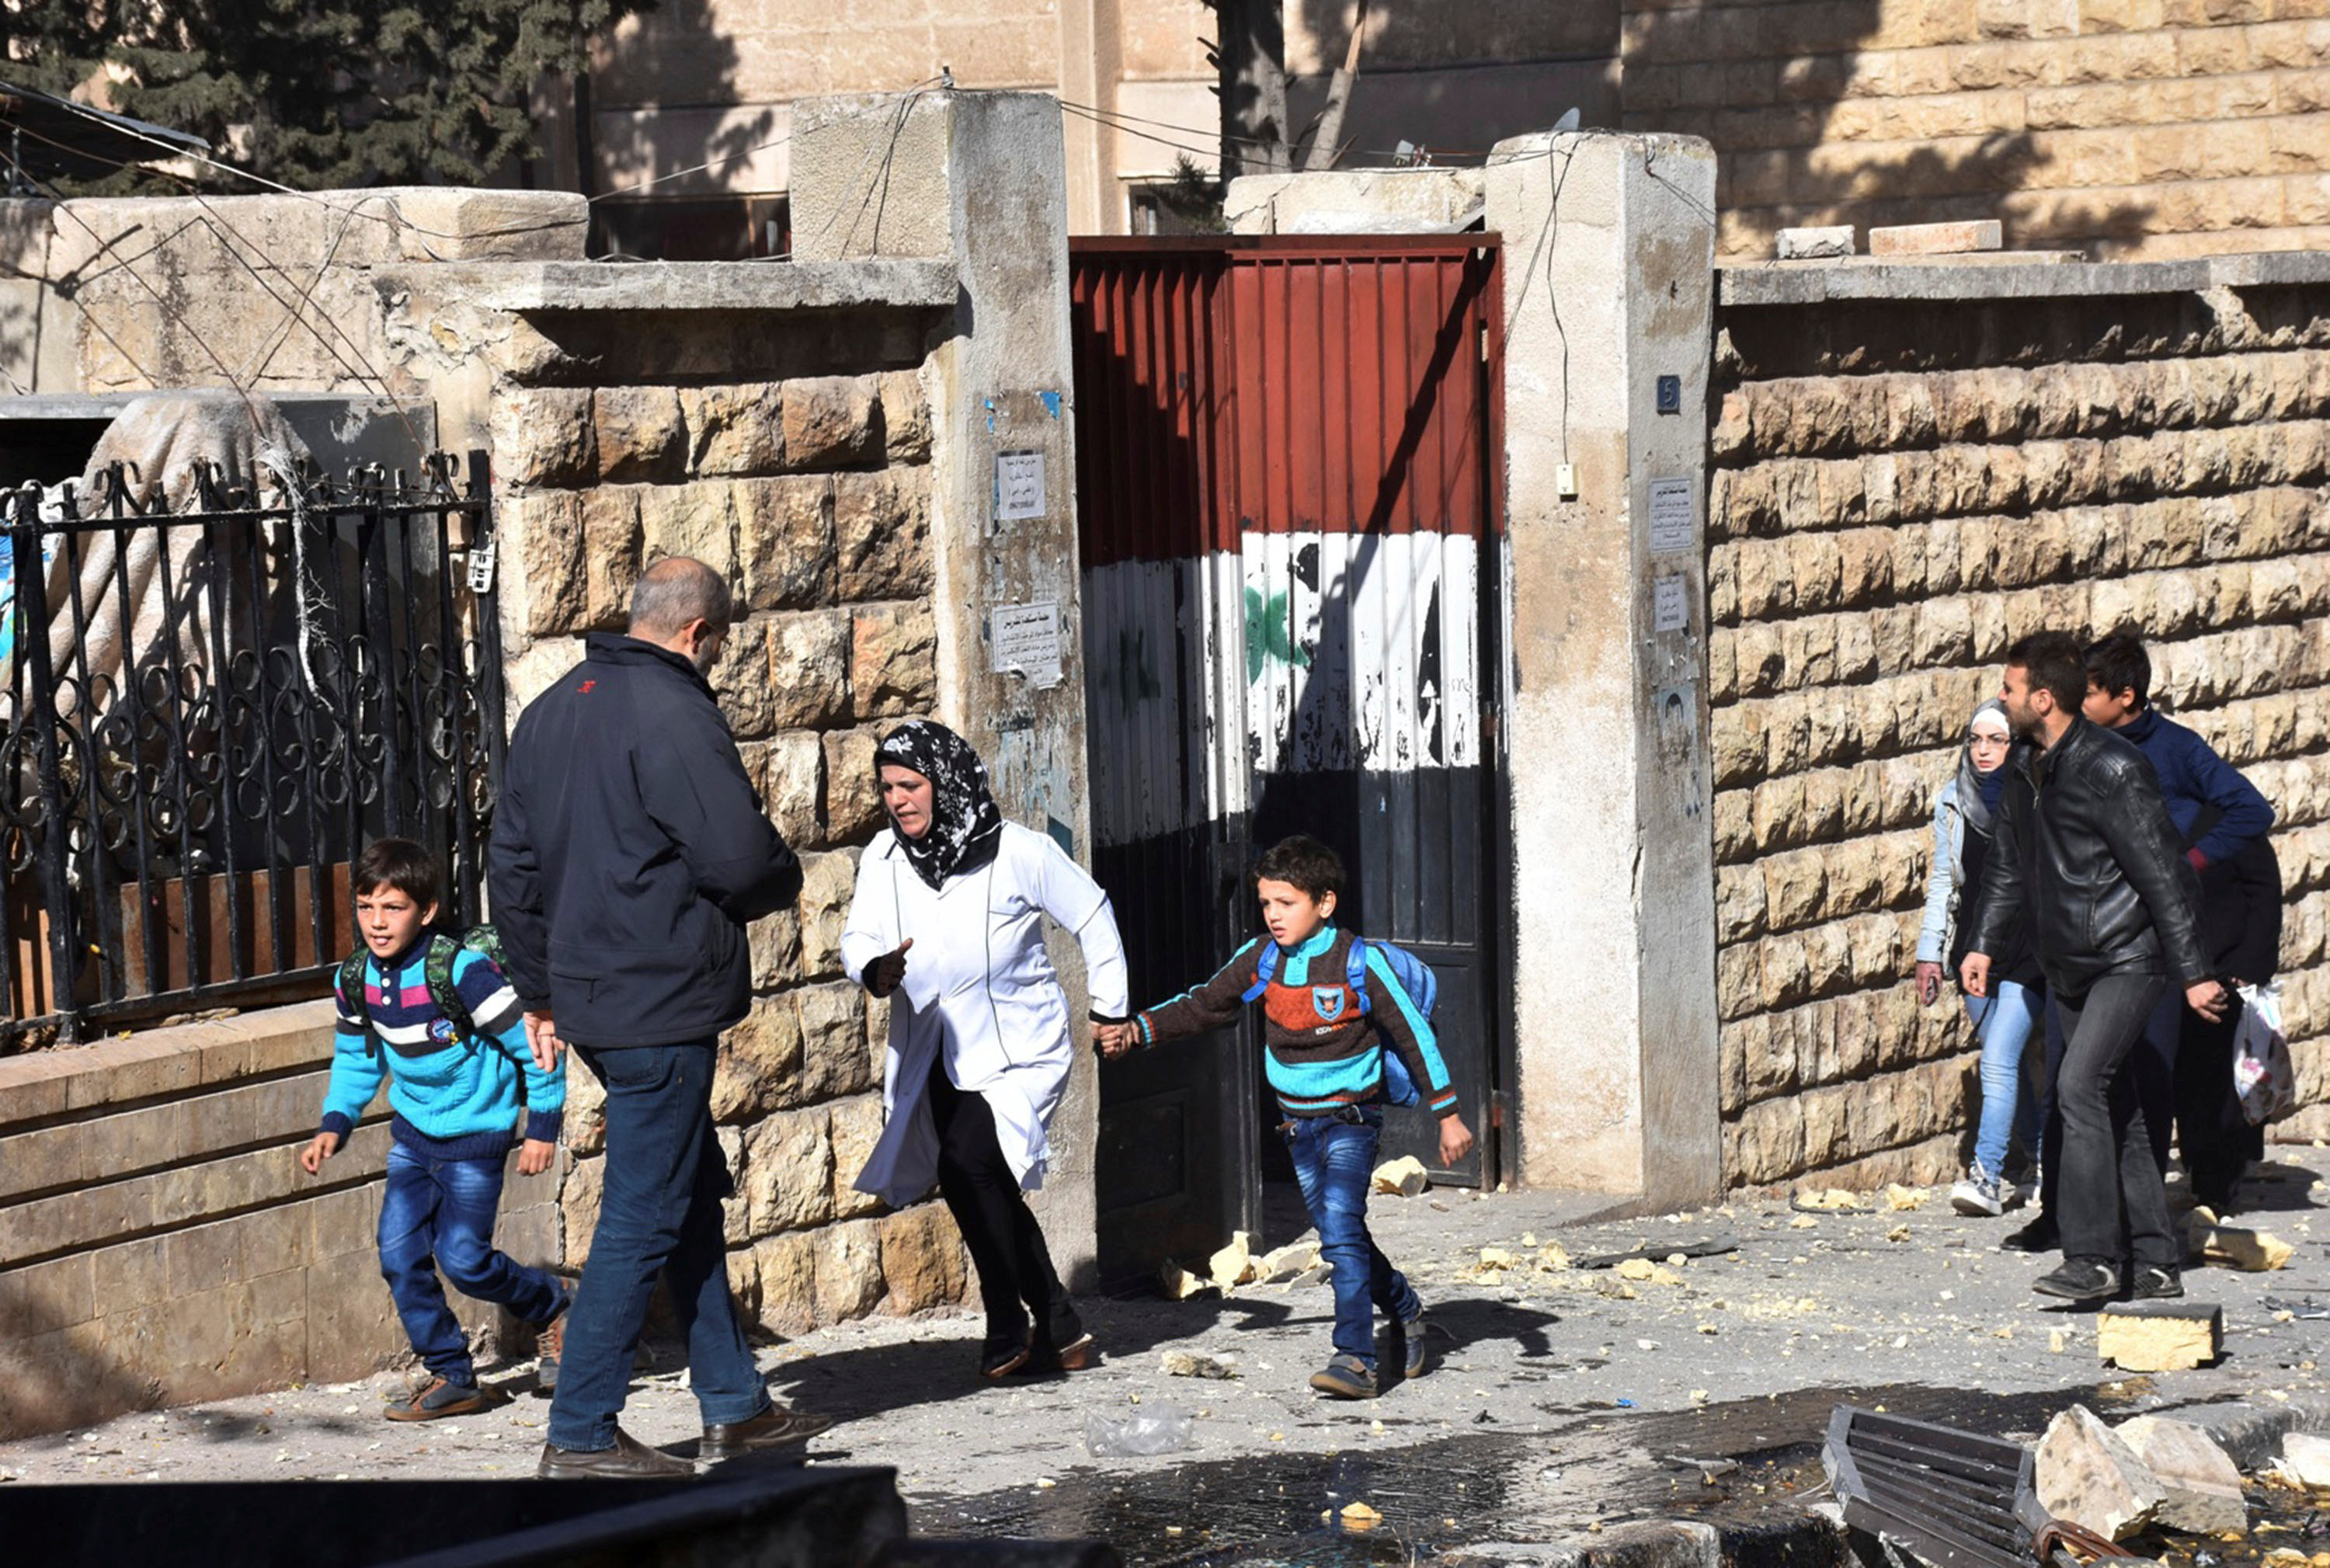 Schoolchildren evacuate a school after shelling by Syrian rebels on government-held western Aleppo, Syria in this handout picture provided by SANA on November 20, 2016. SANA/Handout via REUTERS ATTENTION EDITORS - THIS IMAGE WAS PROVIDED BY A THIRD PARTY. EDITORIAL USE ONLY. REUTERS IS UNABLE TO INDEPENDENTLY VERIFY THIS IMAGE.